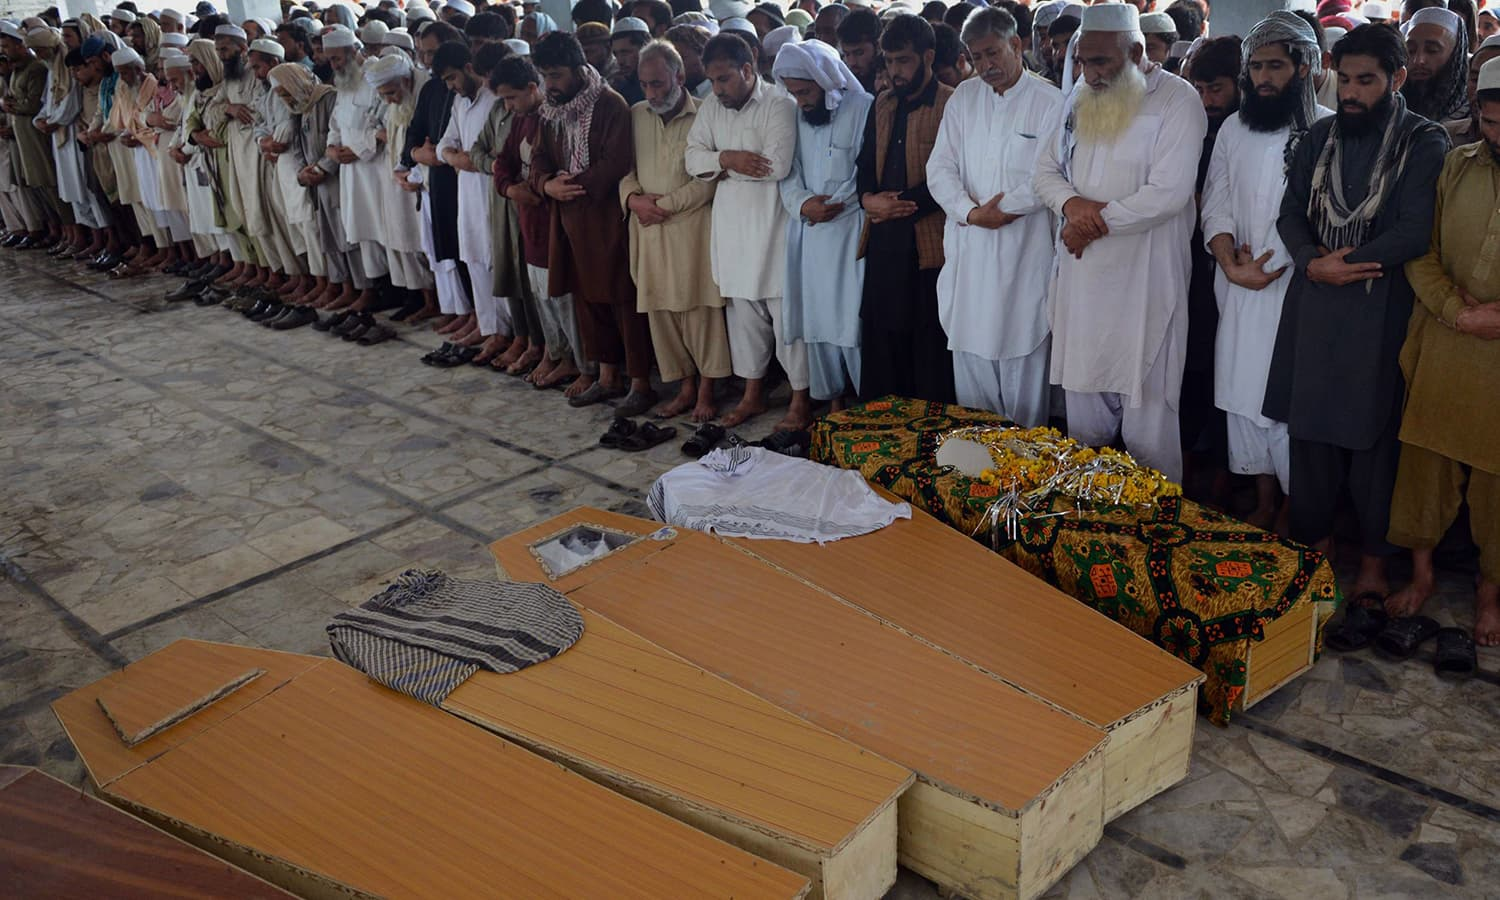 Residents pray alongside the coffins of victims killed in heavy rain and winds in Peshawar on April 27, 2015. — AFP